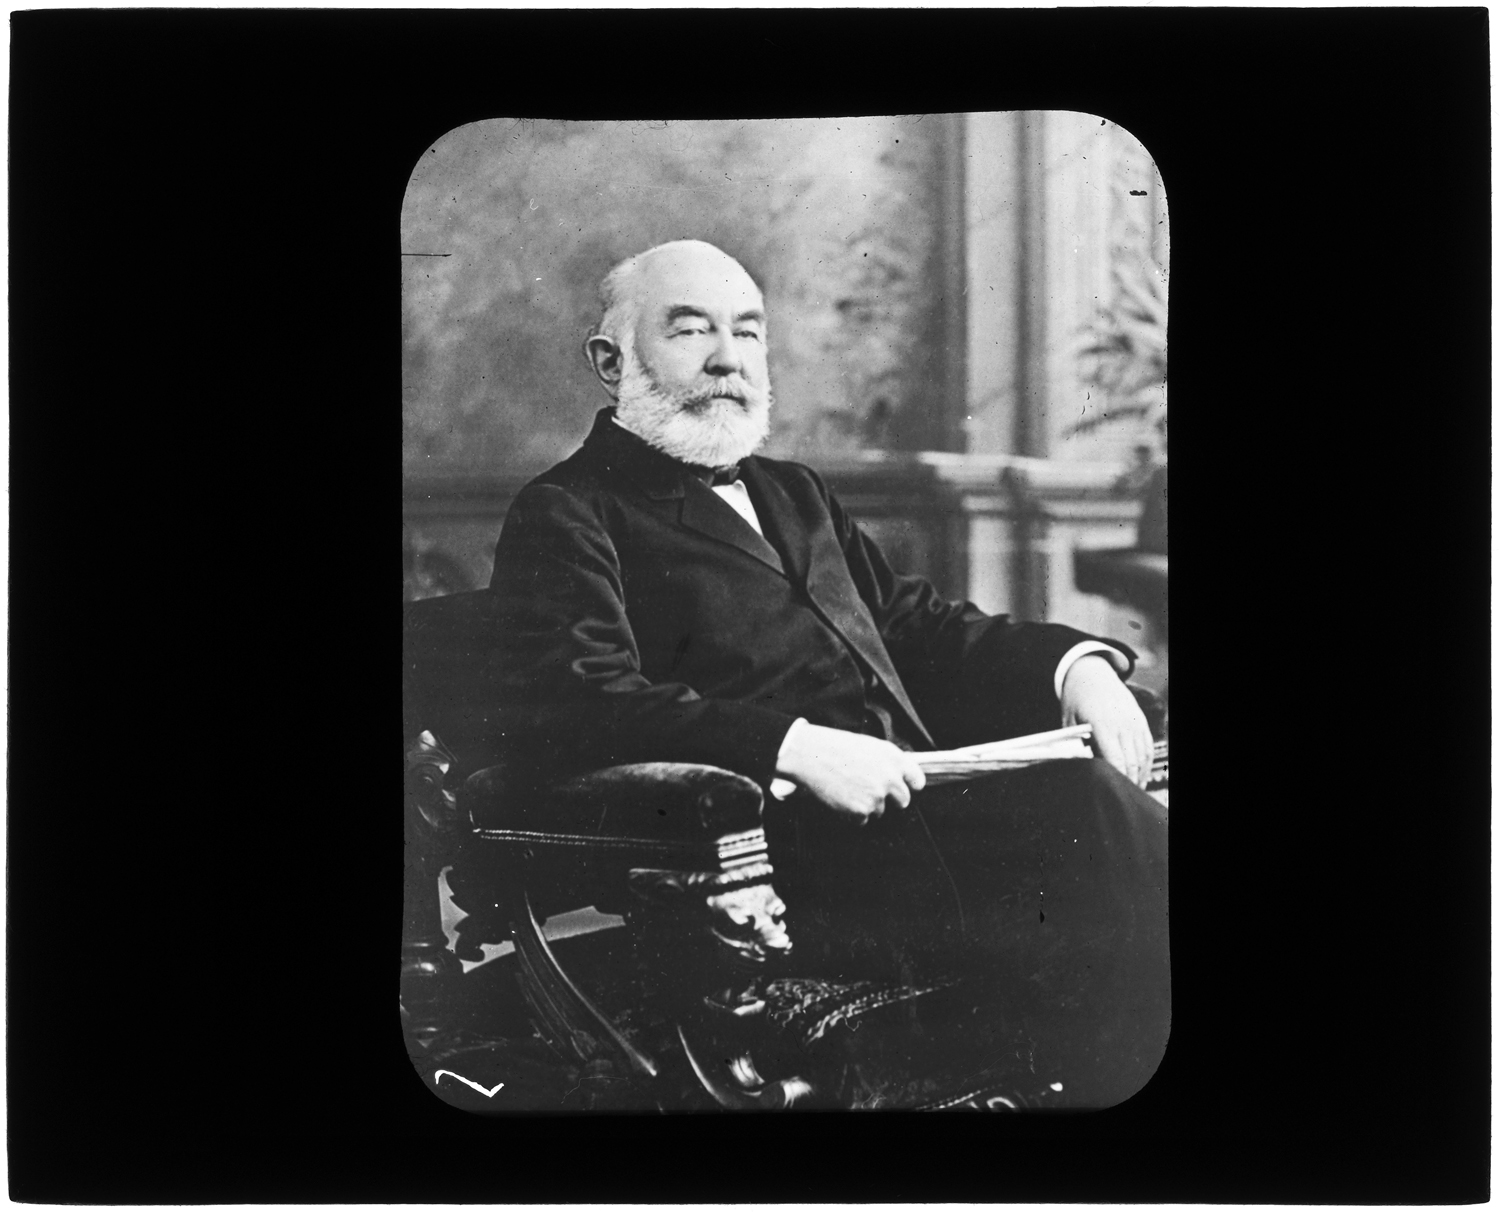 Henry R. Glover, seated portrait, circa 1890